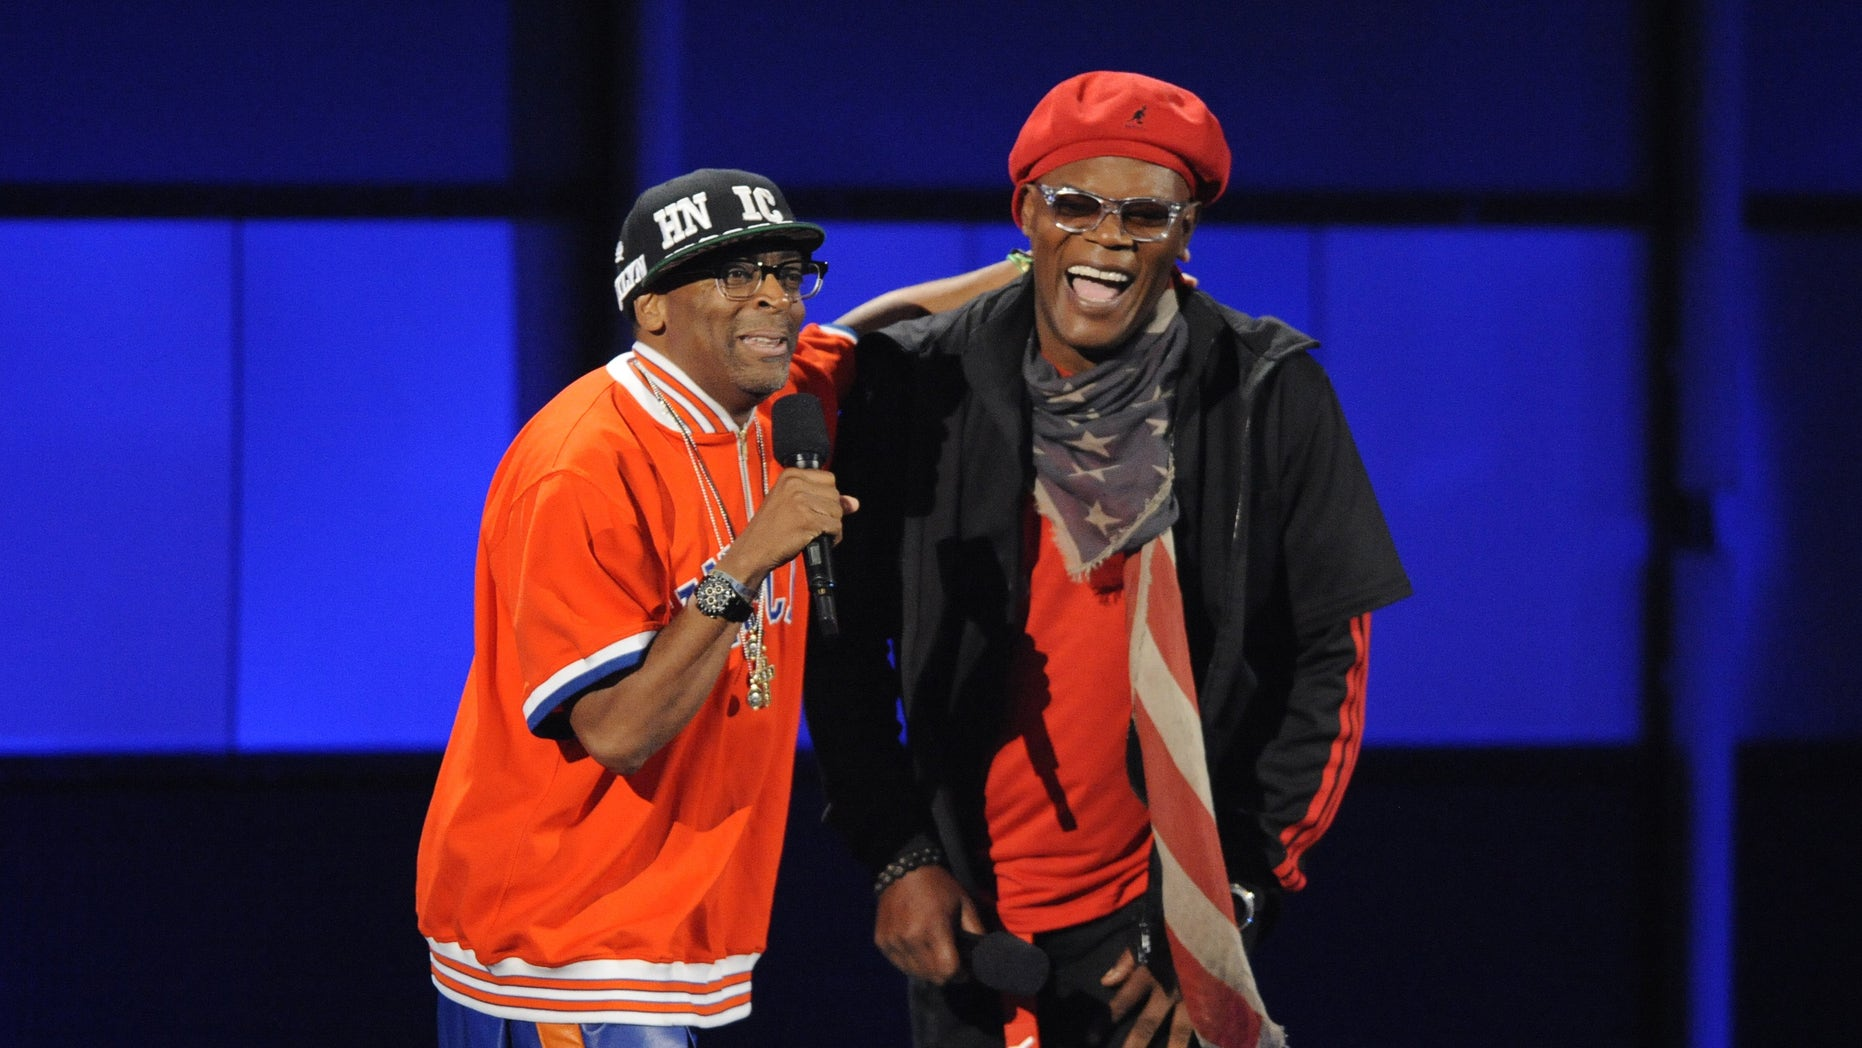 July 1, 2012. Spike Lee (L) and host Samuel L. Jackson perform at the 2012 BET Awards in Los Angeles.